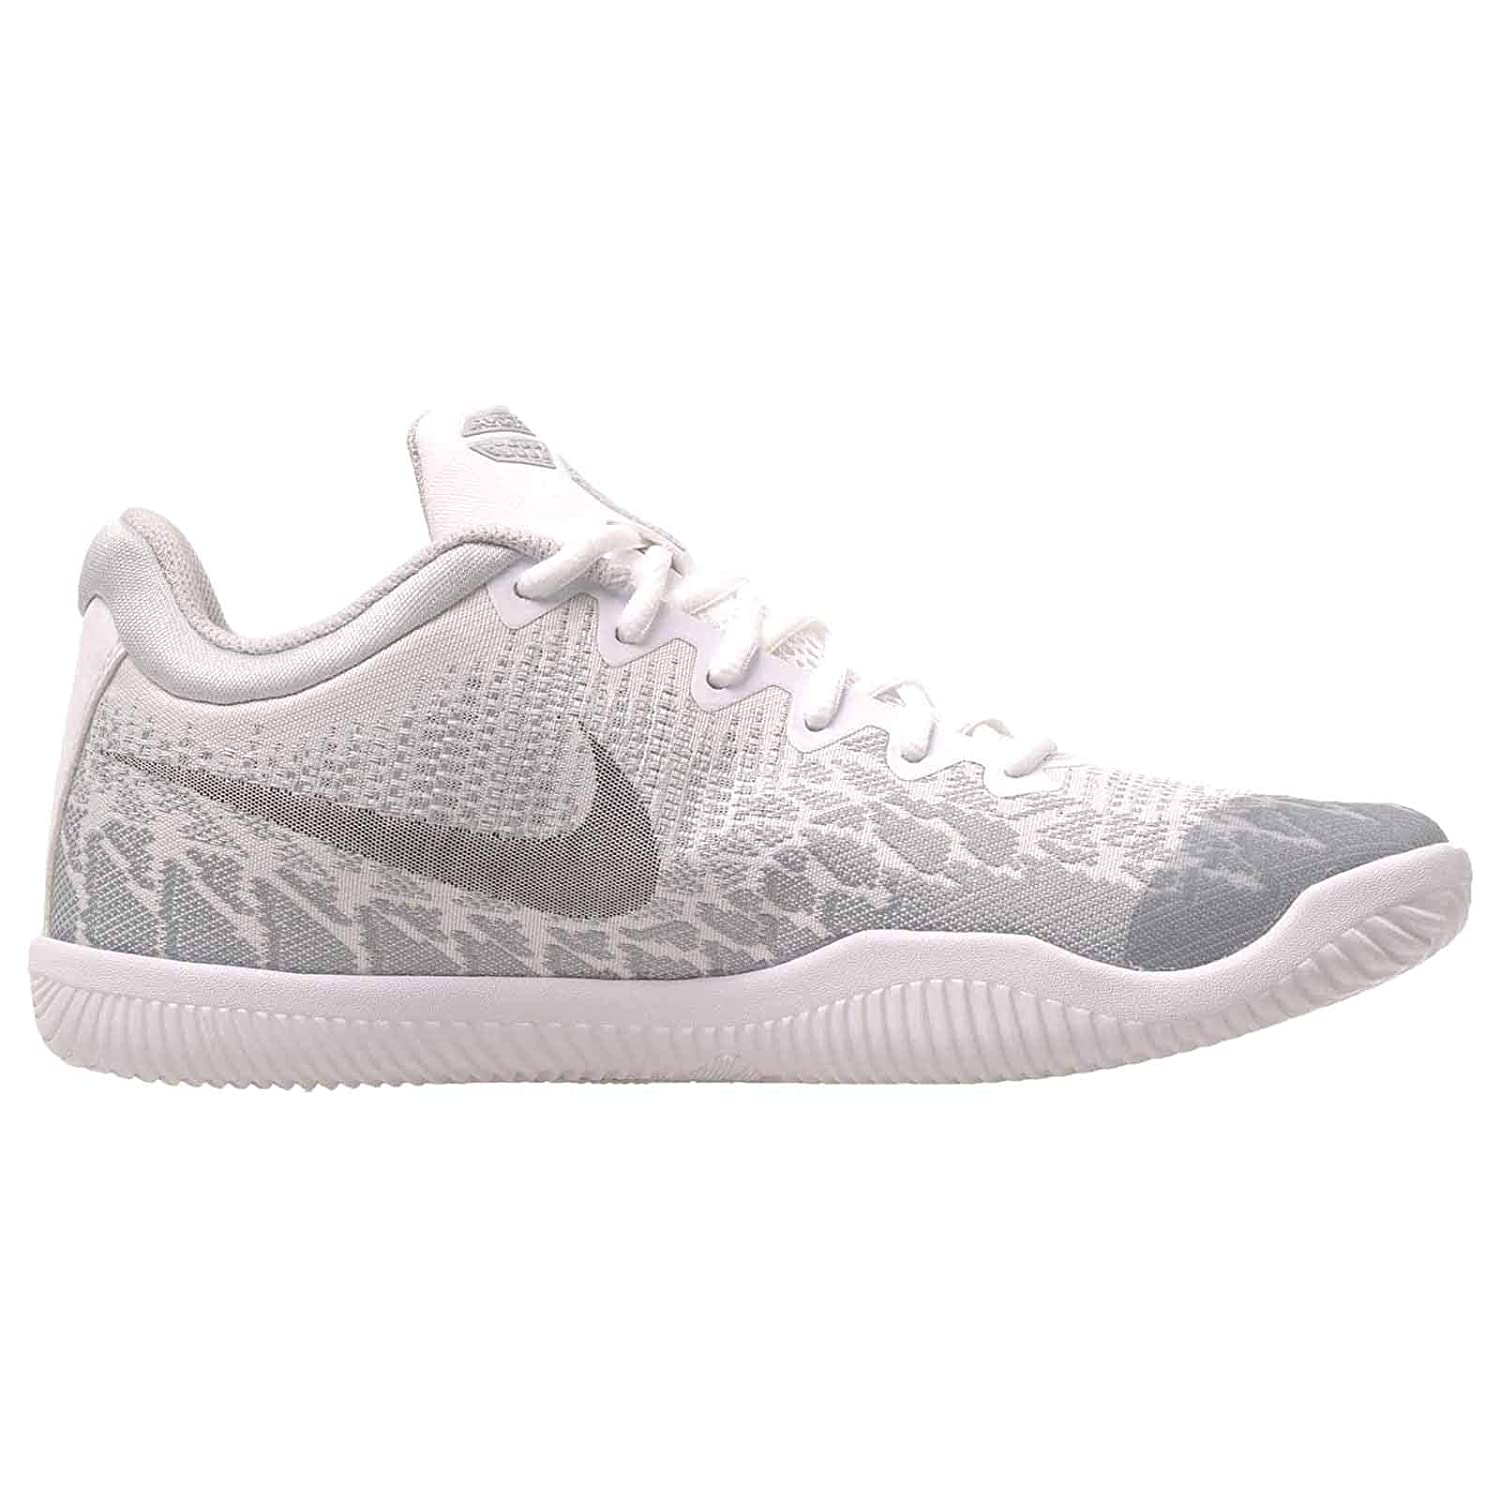 Nike Men s Kobe Mamba Rage Basketball Shoes, White Black Pure Platinum – 11.5